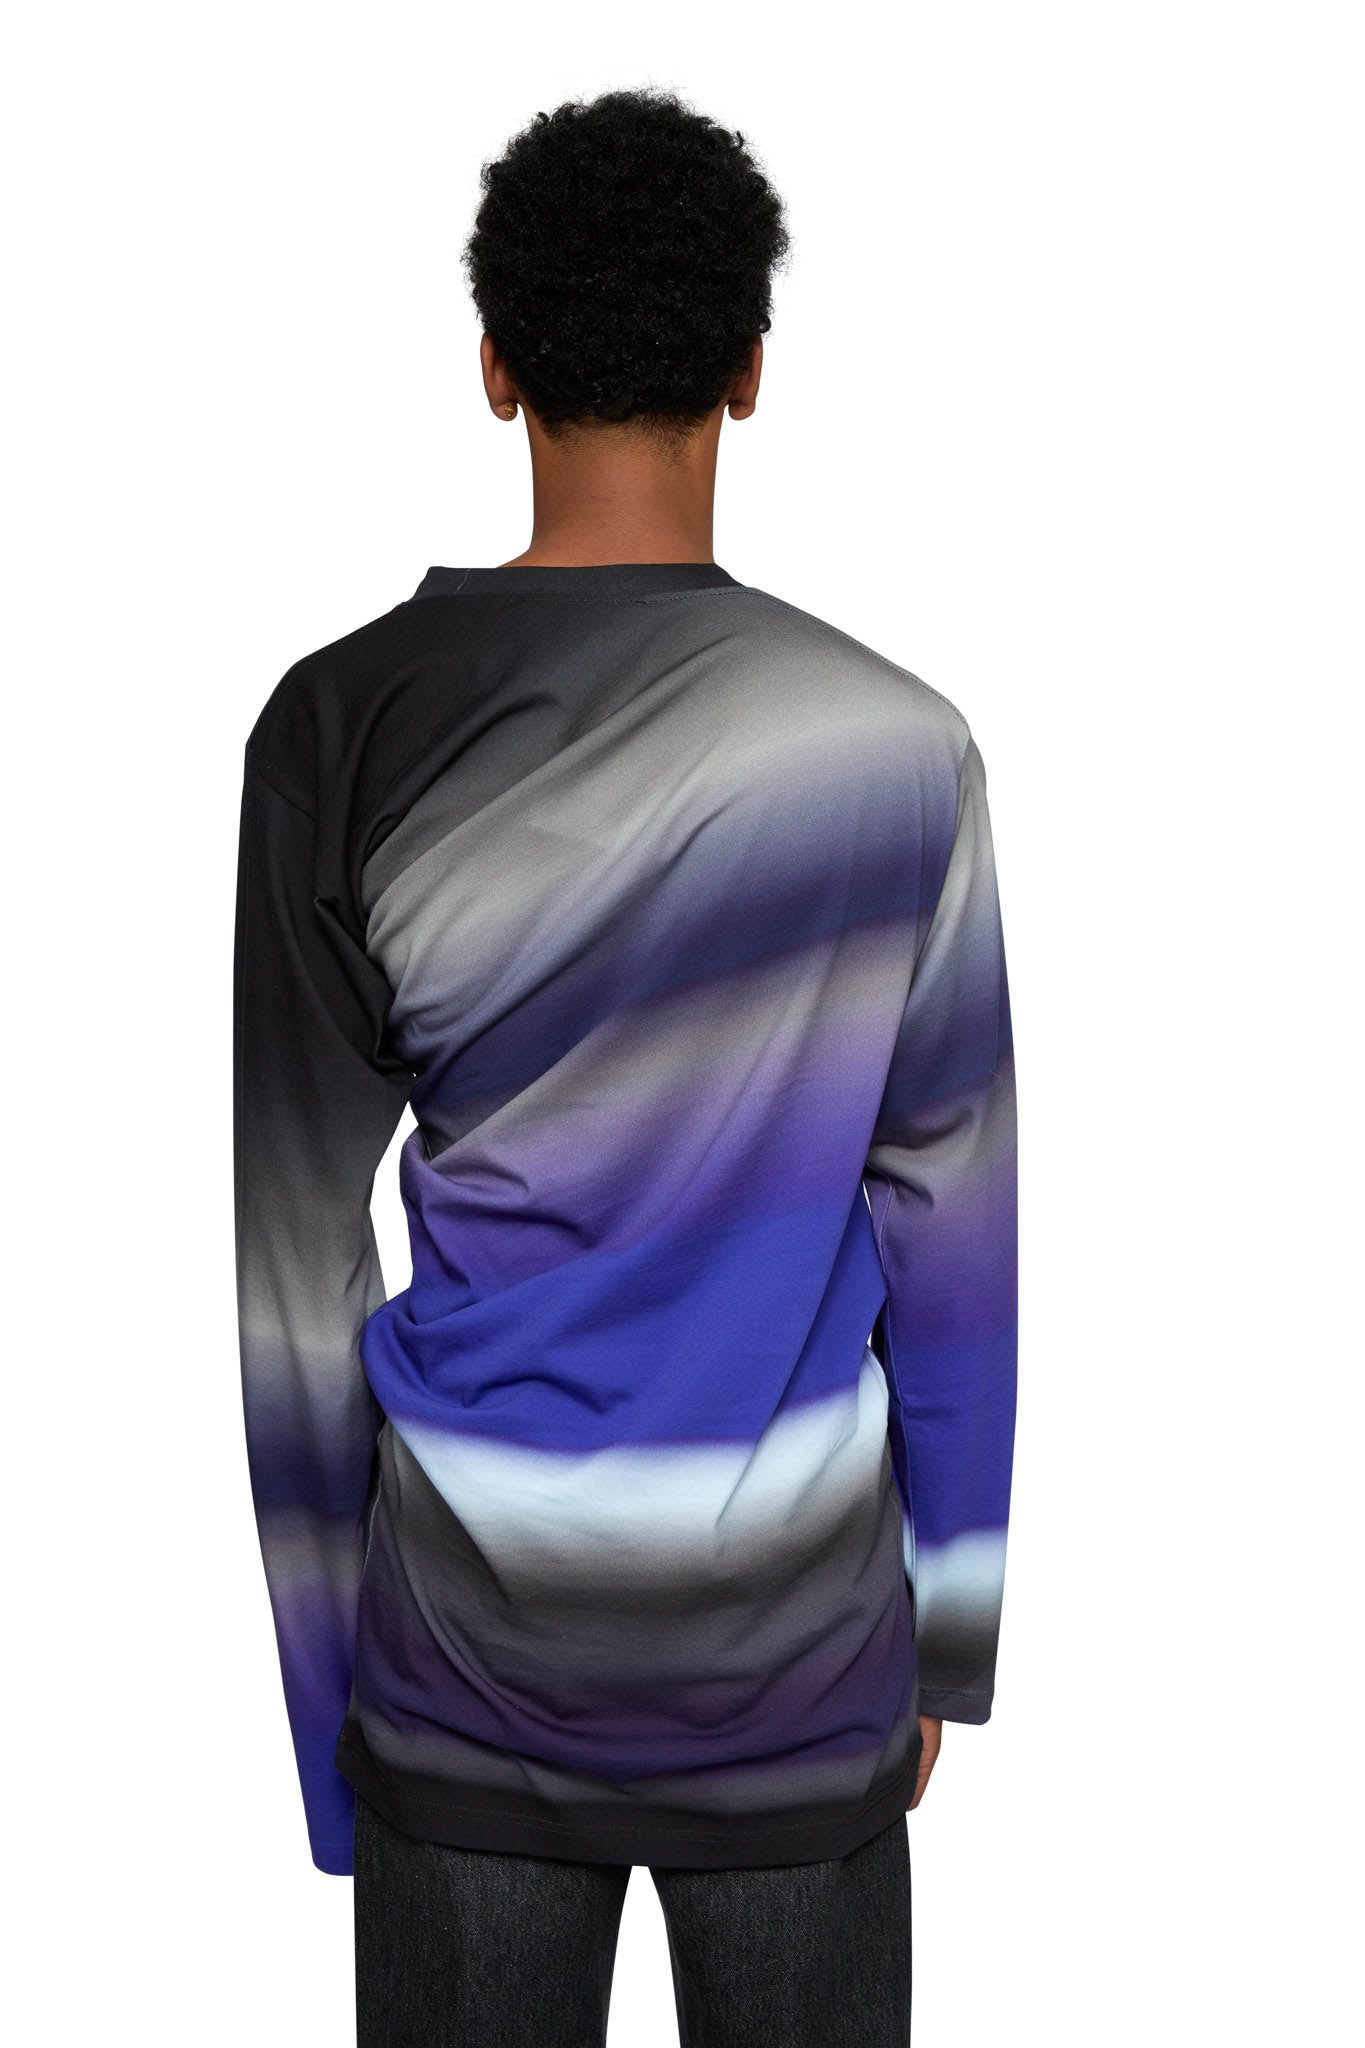 Y/PROJECT, TWISTED LONG SLEEVE T-SHIRT, PURPLE OMBRE, TS50-S19 J35, AW20, COTTON, MENS, TSHIRT